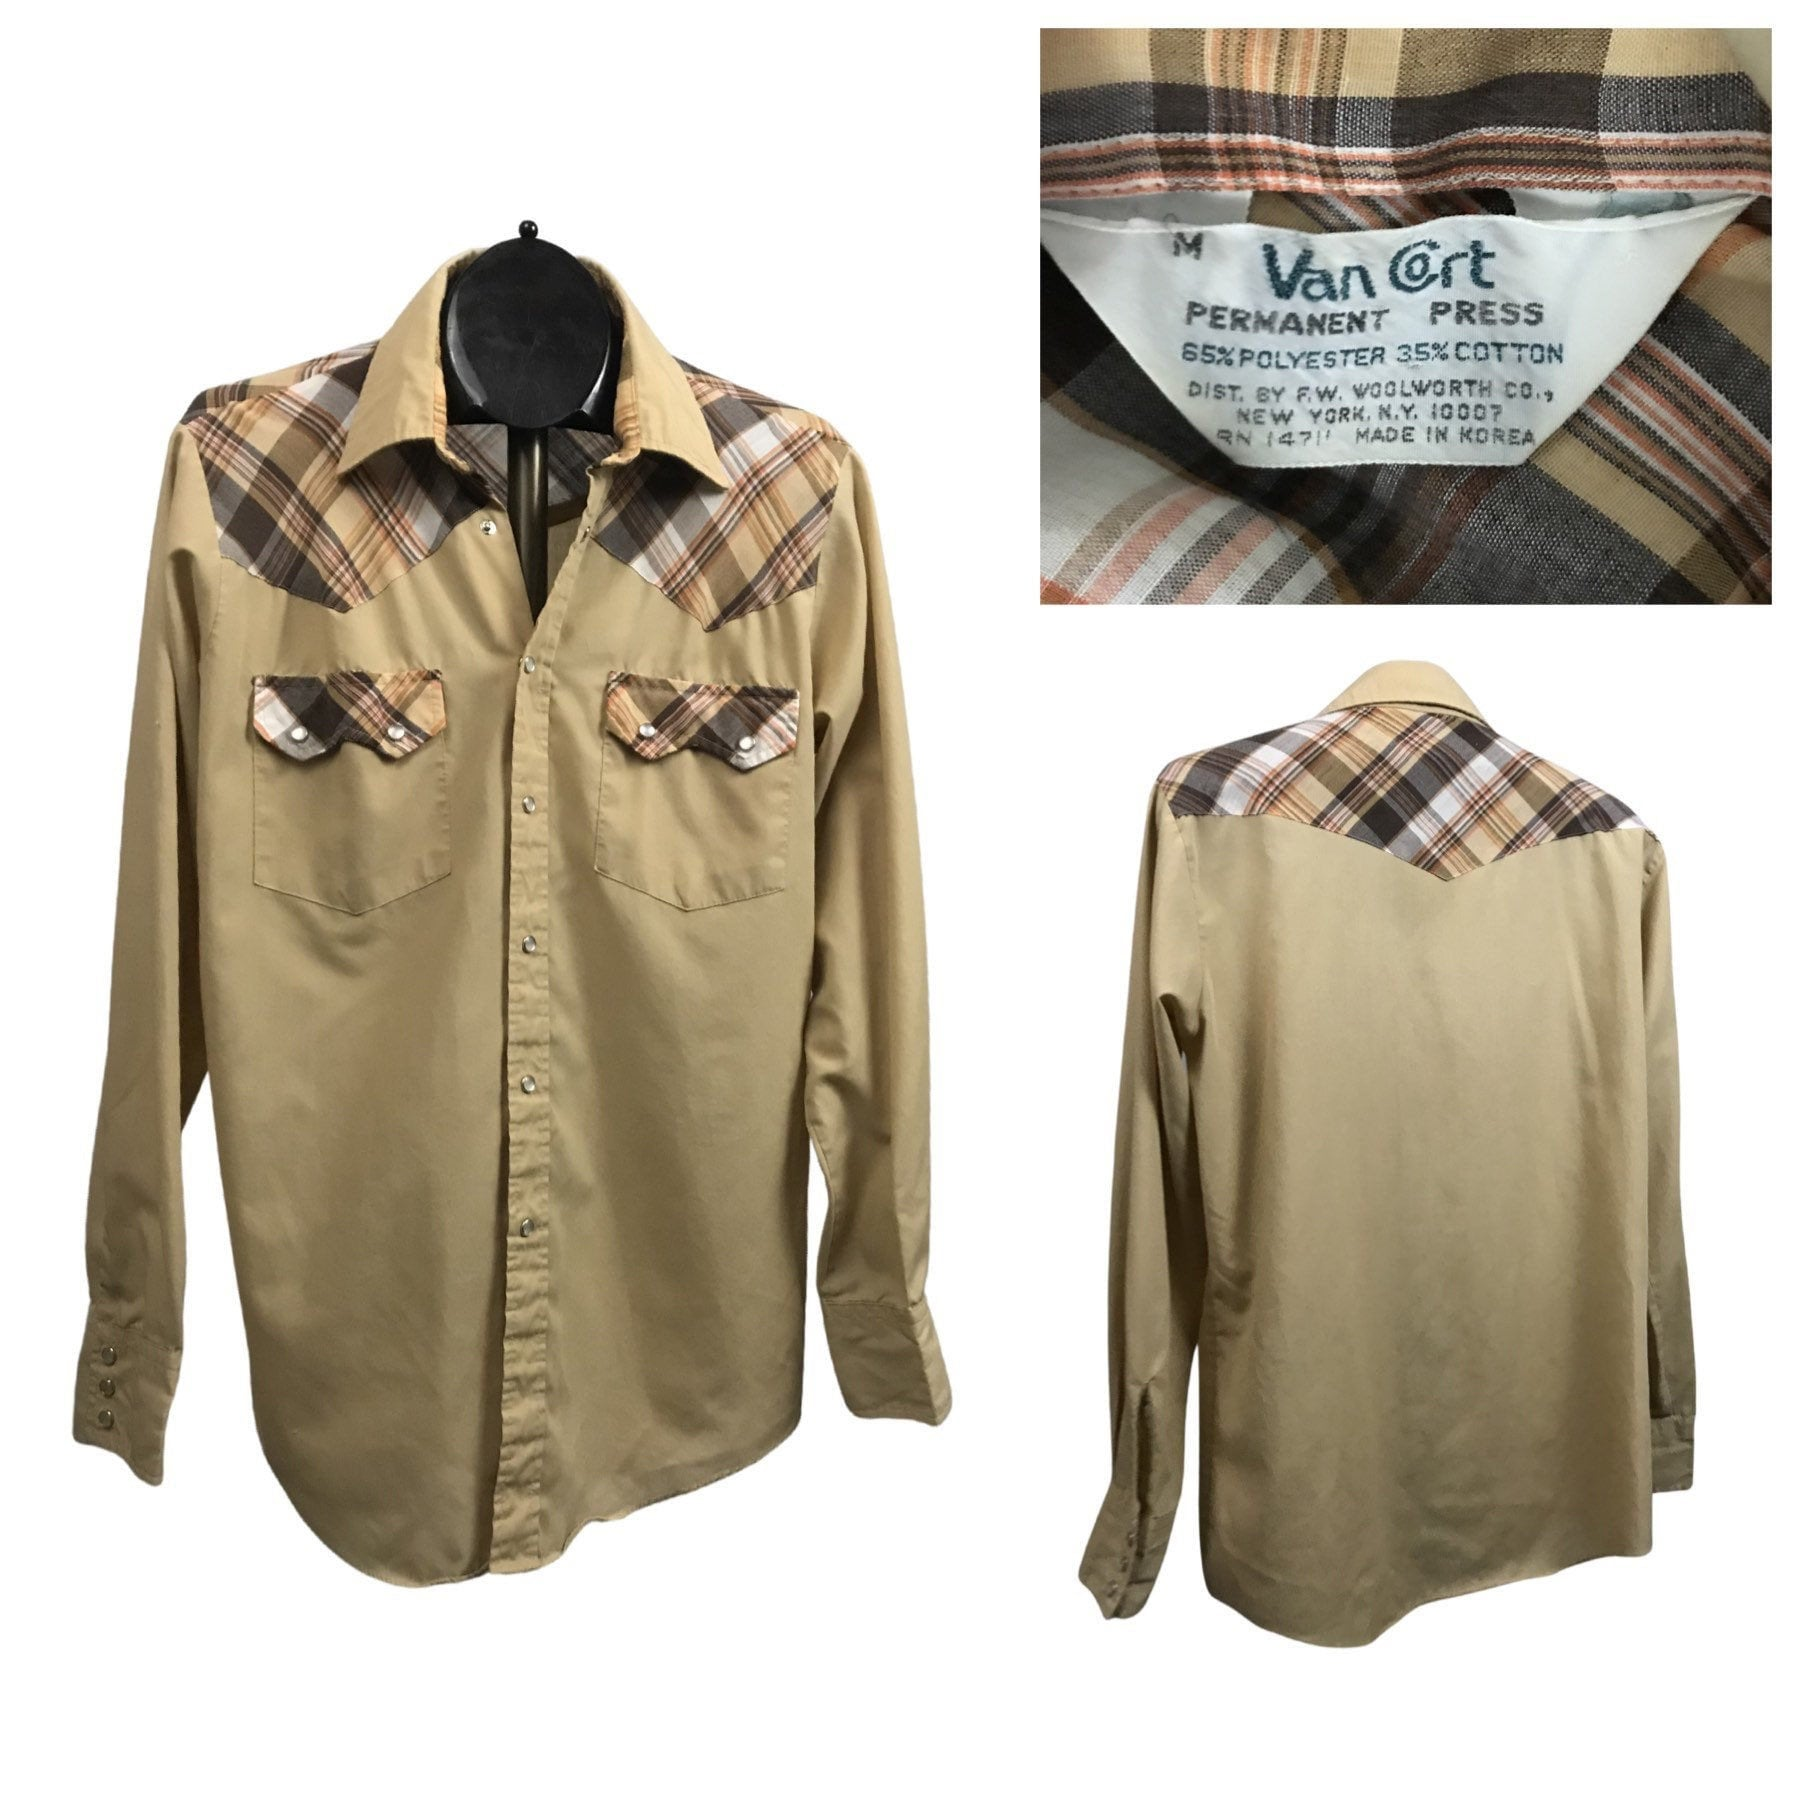 1970s Men's Shirt Styles – Vintage 70s Shirts for Guys 1970S Western Shirt70S Southwestern Checked Snap Button Down Mens ML $41.25 AT vintagedancer.com